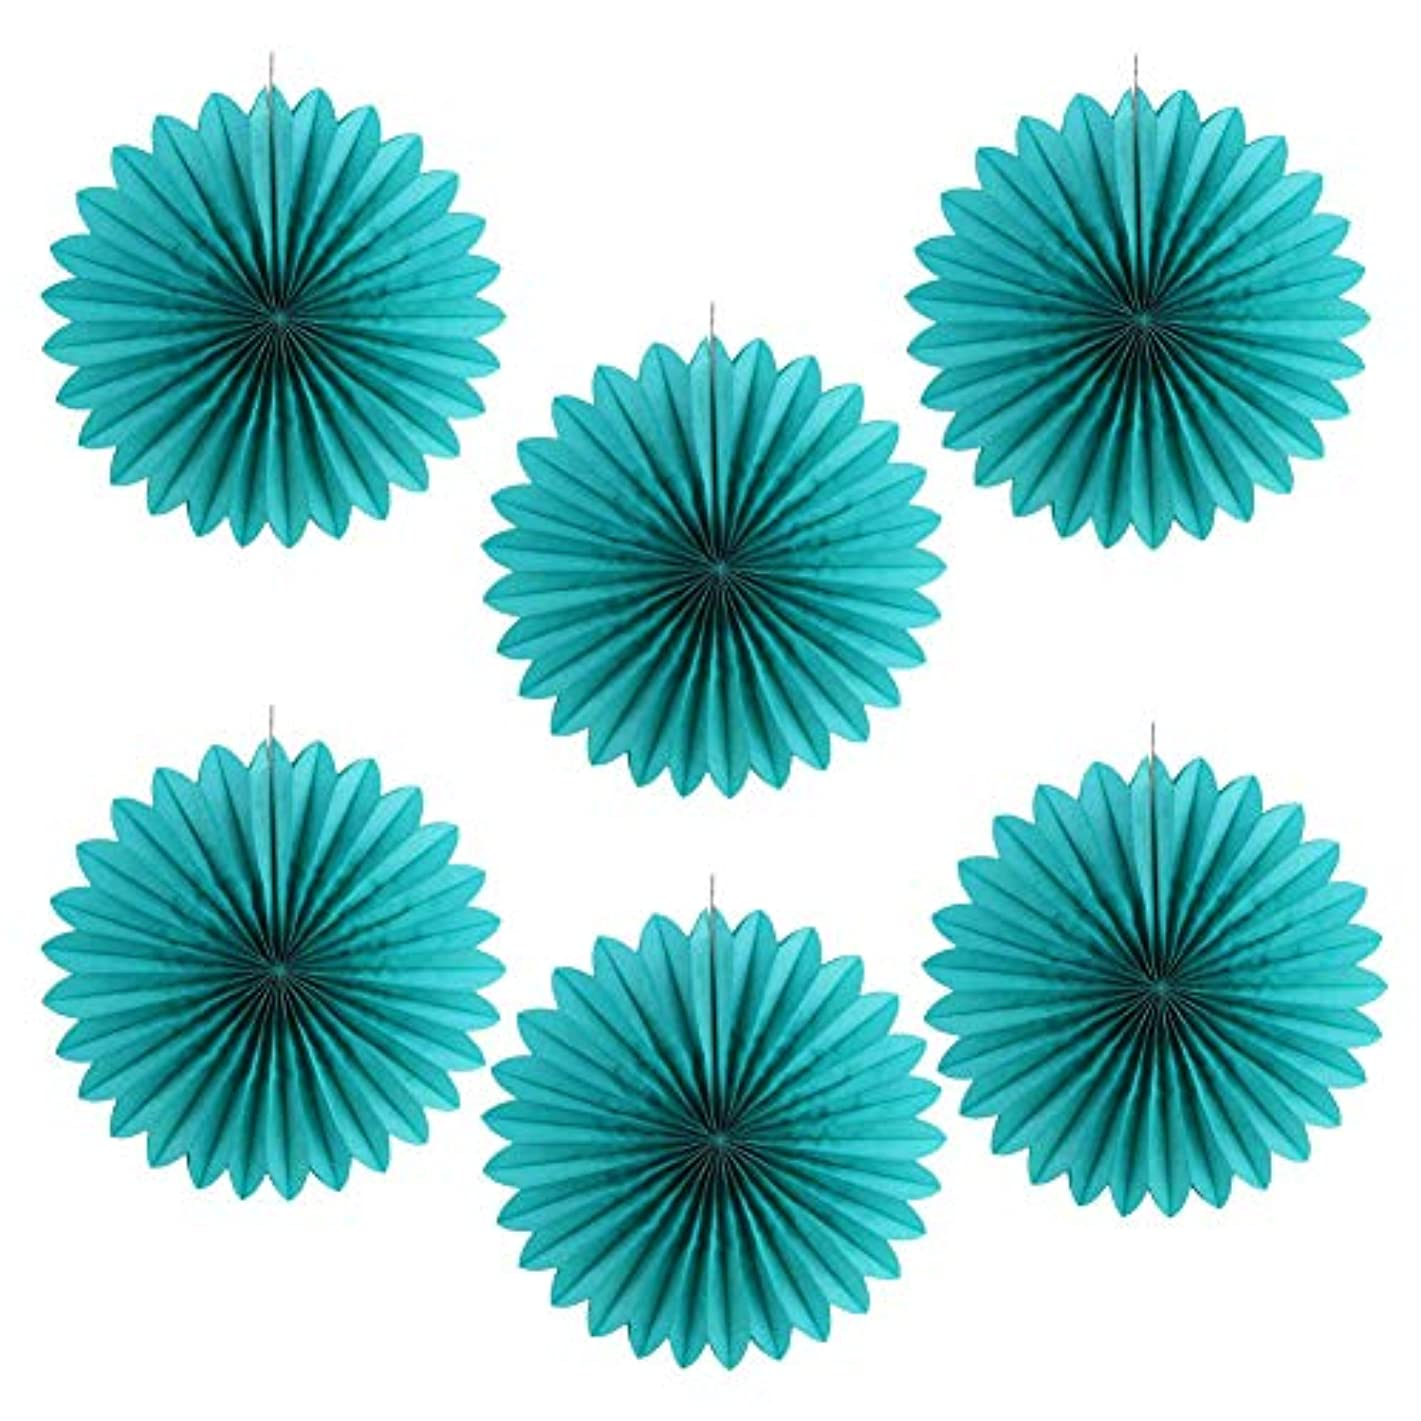 14'' Tissue Paper Fans Honeycomb Birthday Wedding Home Party Hanging Decoration 6Pcs (Teal Blue)